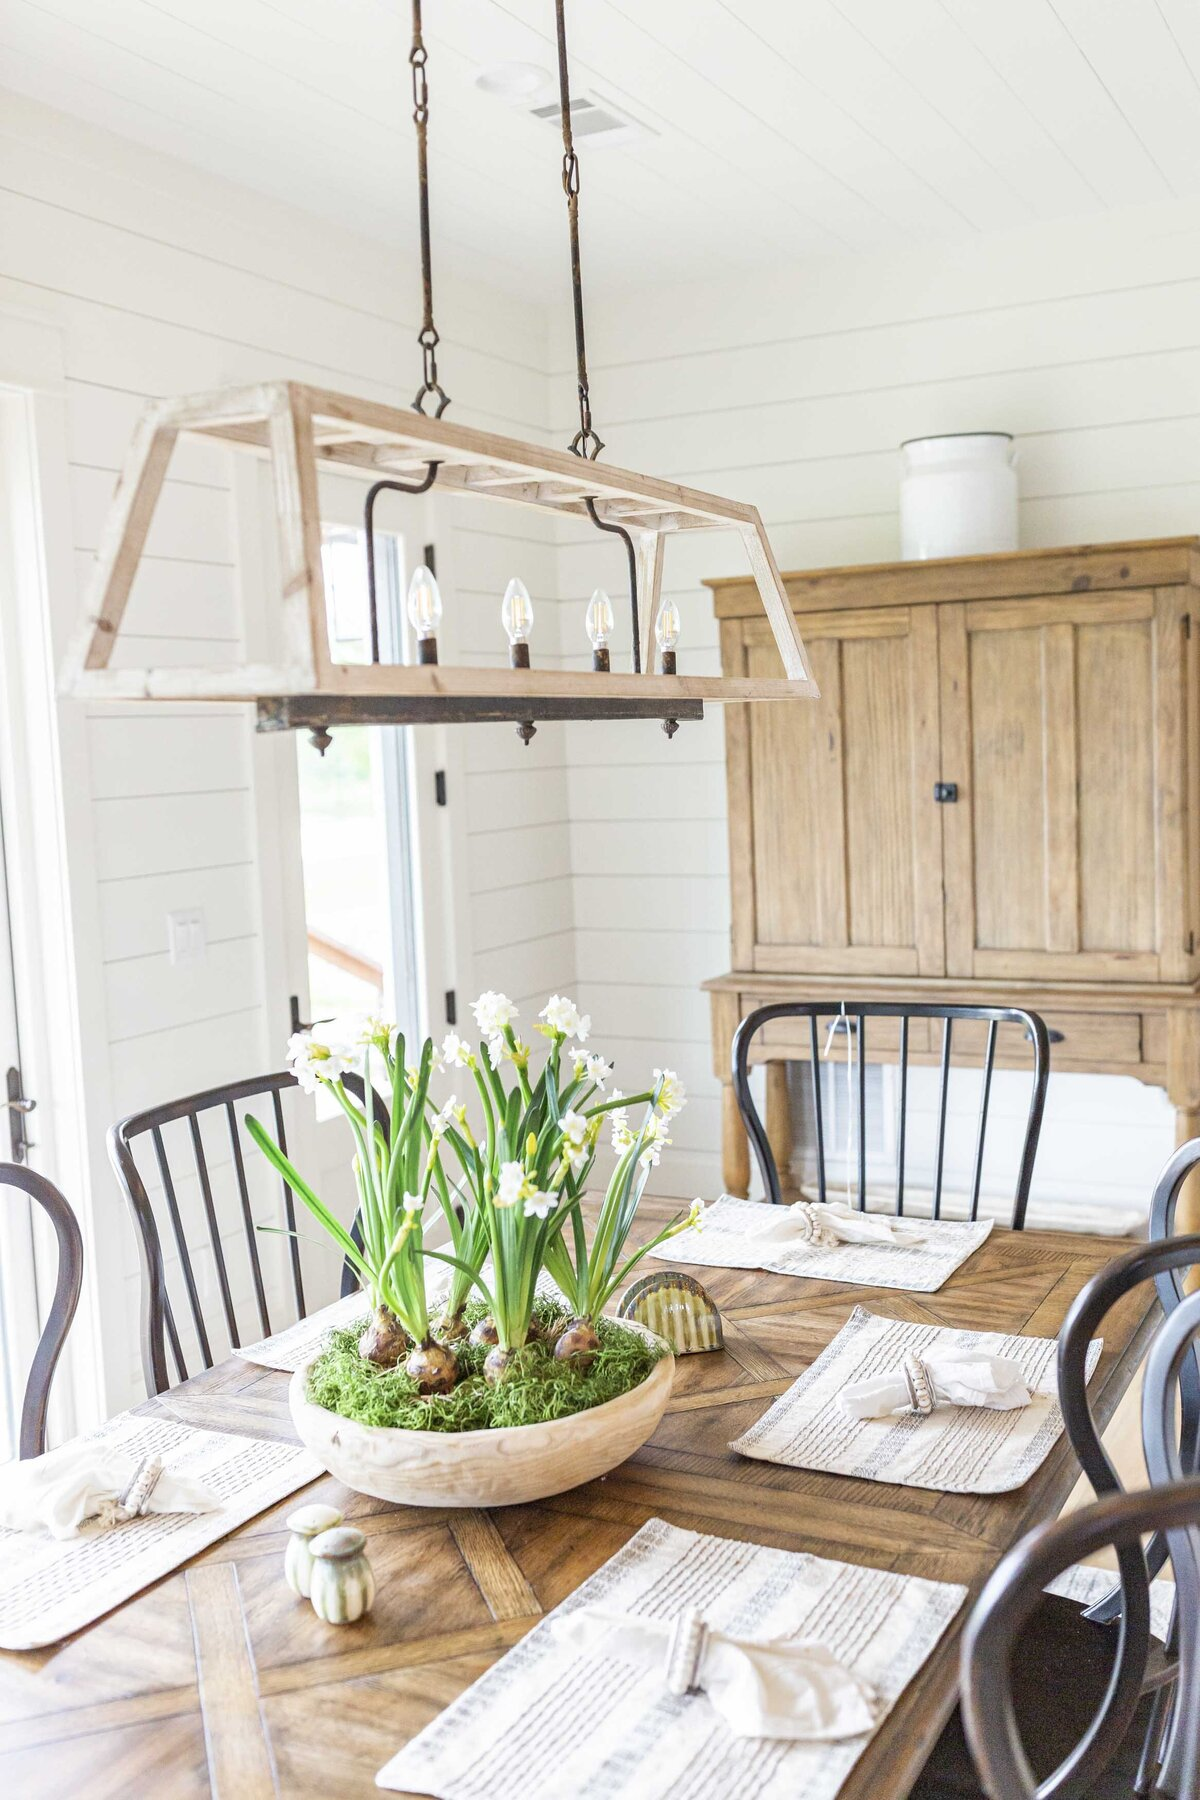 kitchen-dining-room-decor-inspiration-wood-decor1